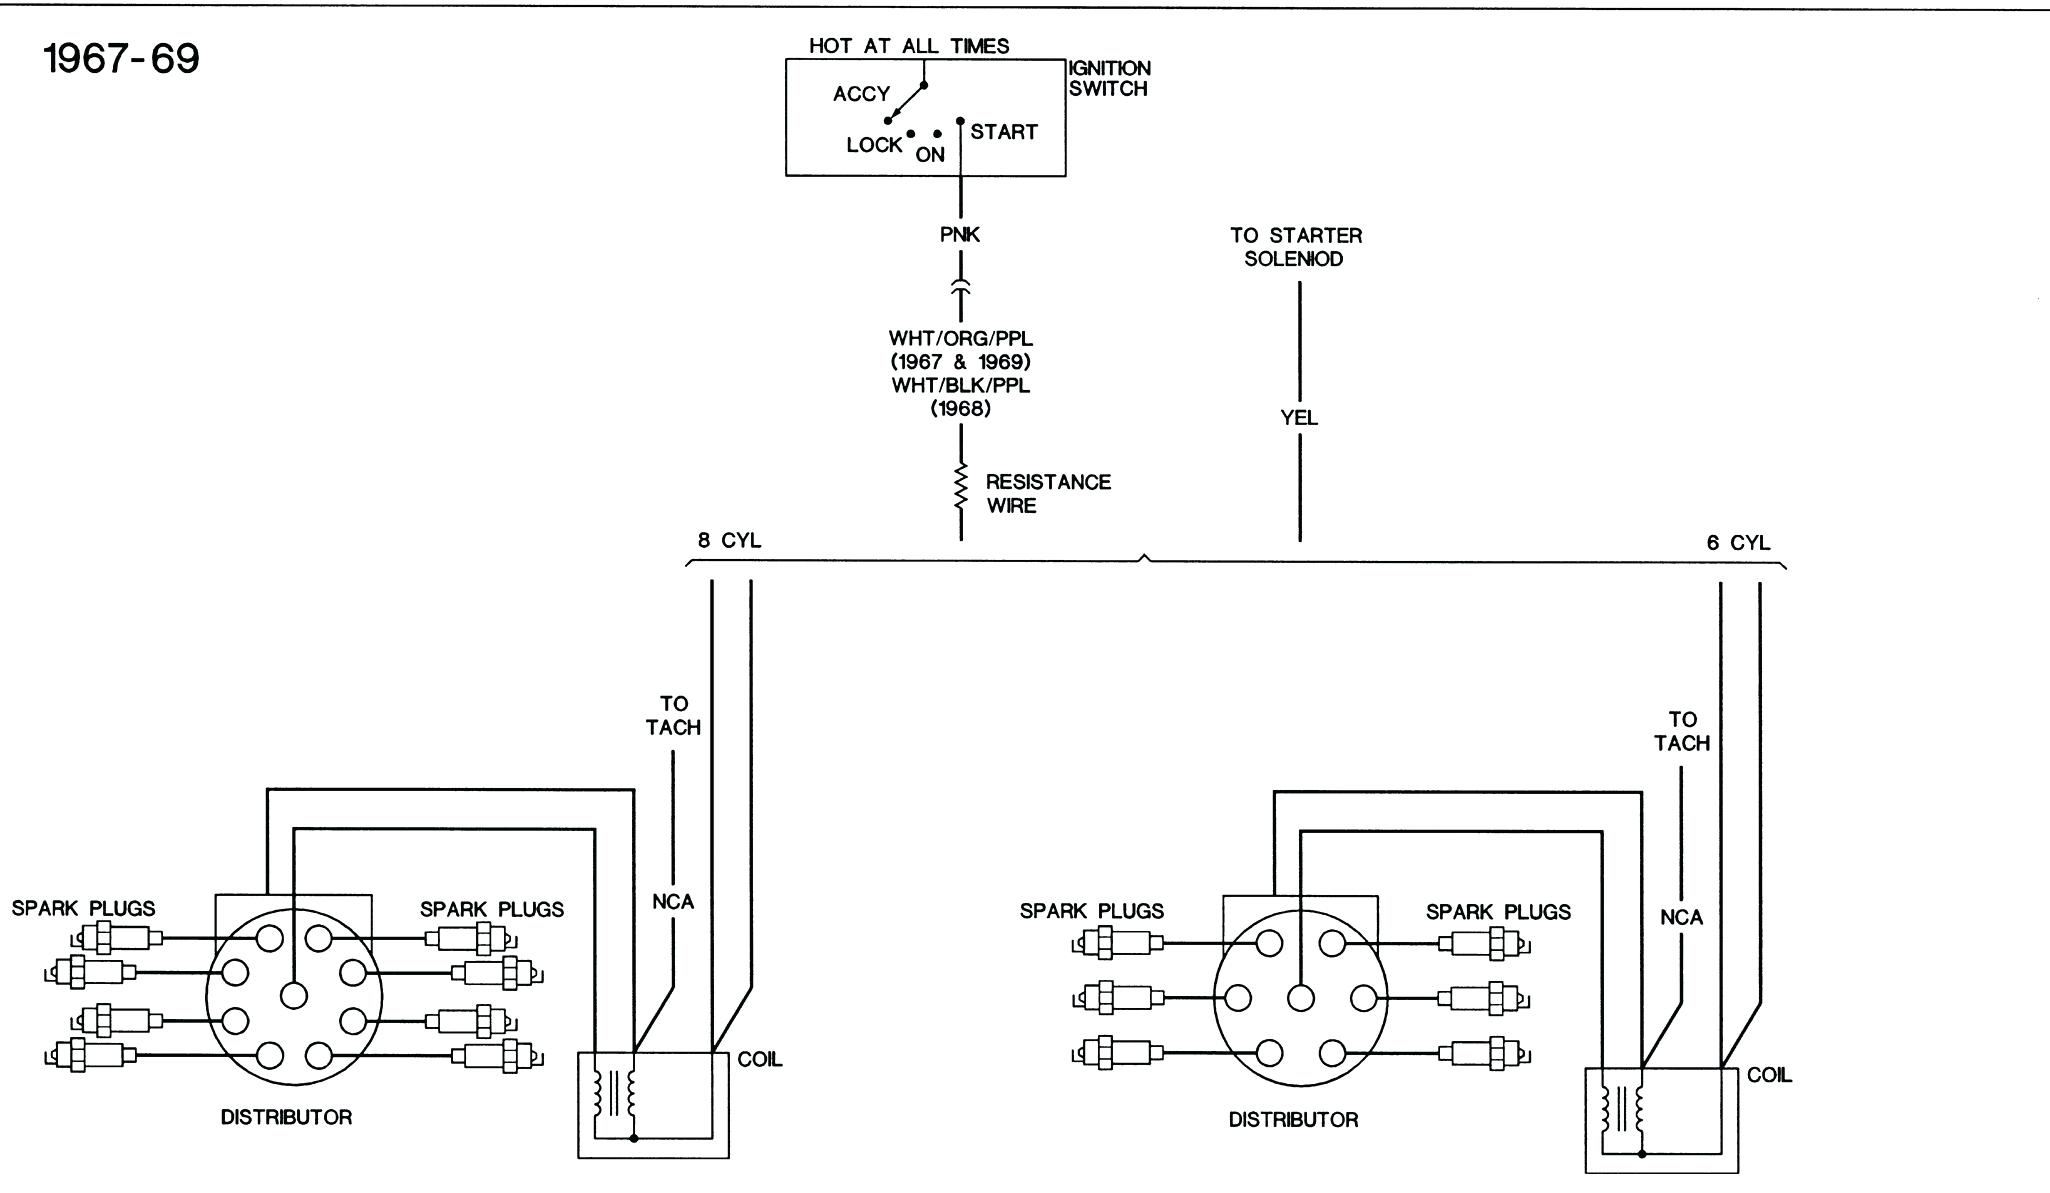 simple ignition wiring diagram Download-Simple Ignition Wiring Diagram Best Great Lucas Ignition Switch Wiring Diagram Ideas the Best 10-a